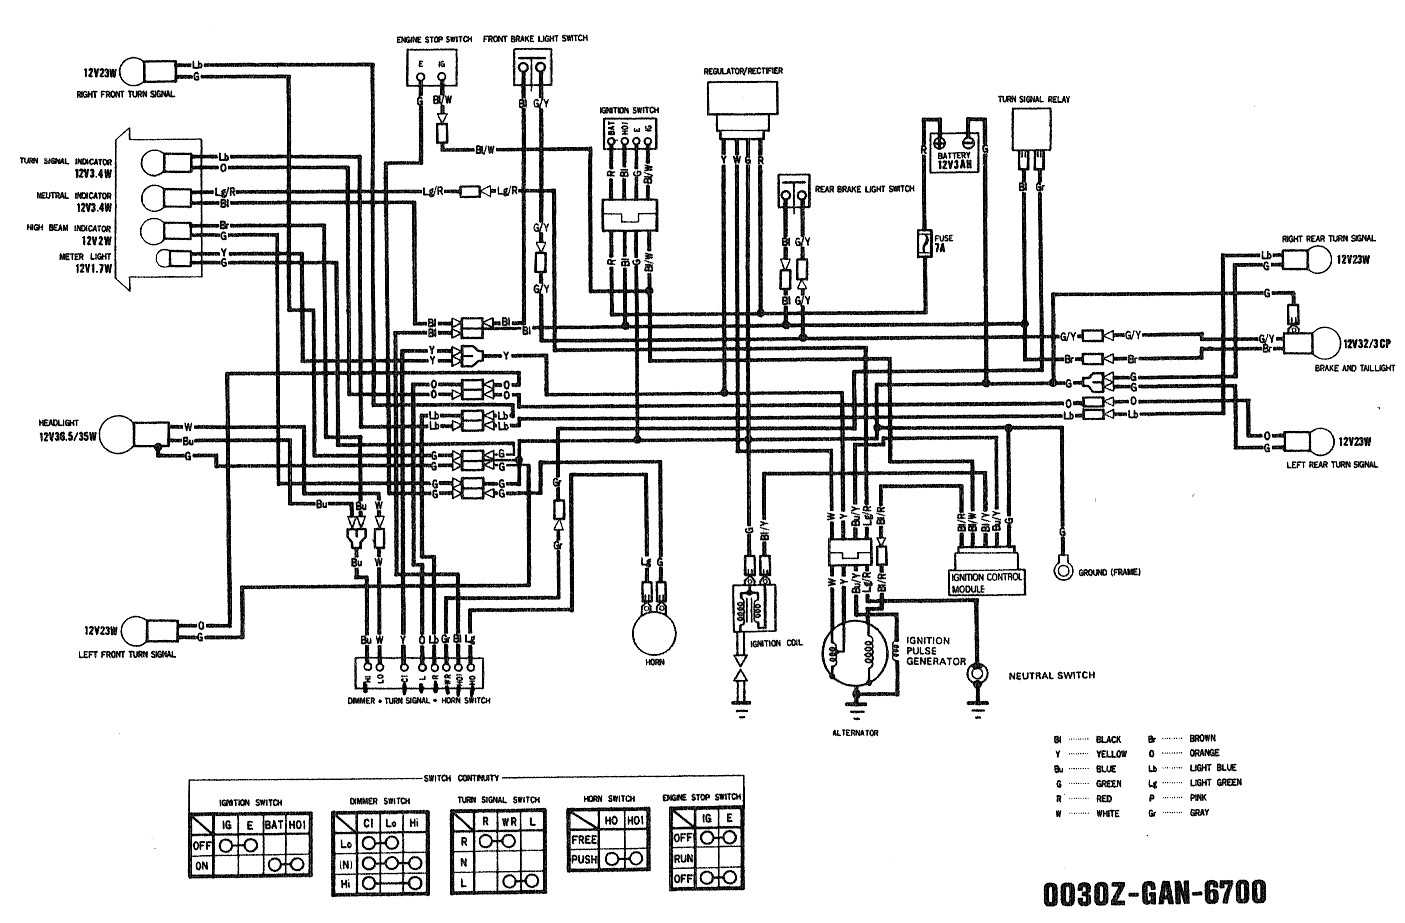 Honda Fury Wiring Diagram Detailed Schematics Goldwing 2010 Schematic Diagrams